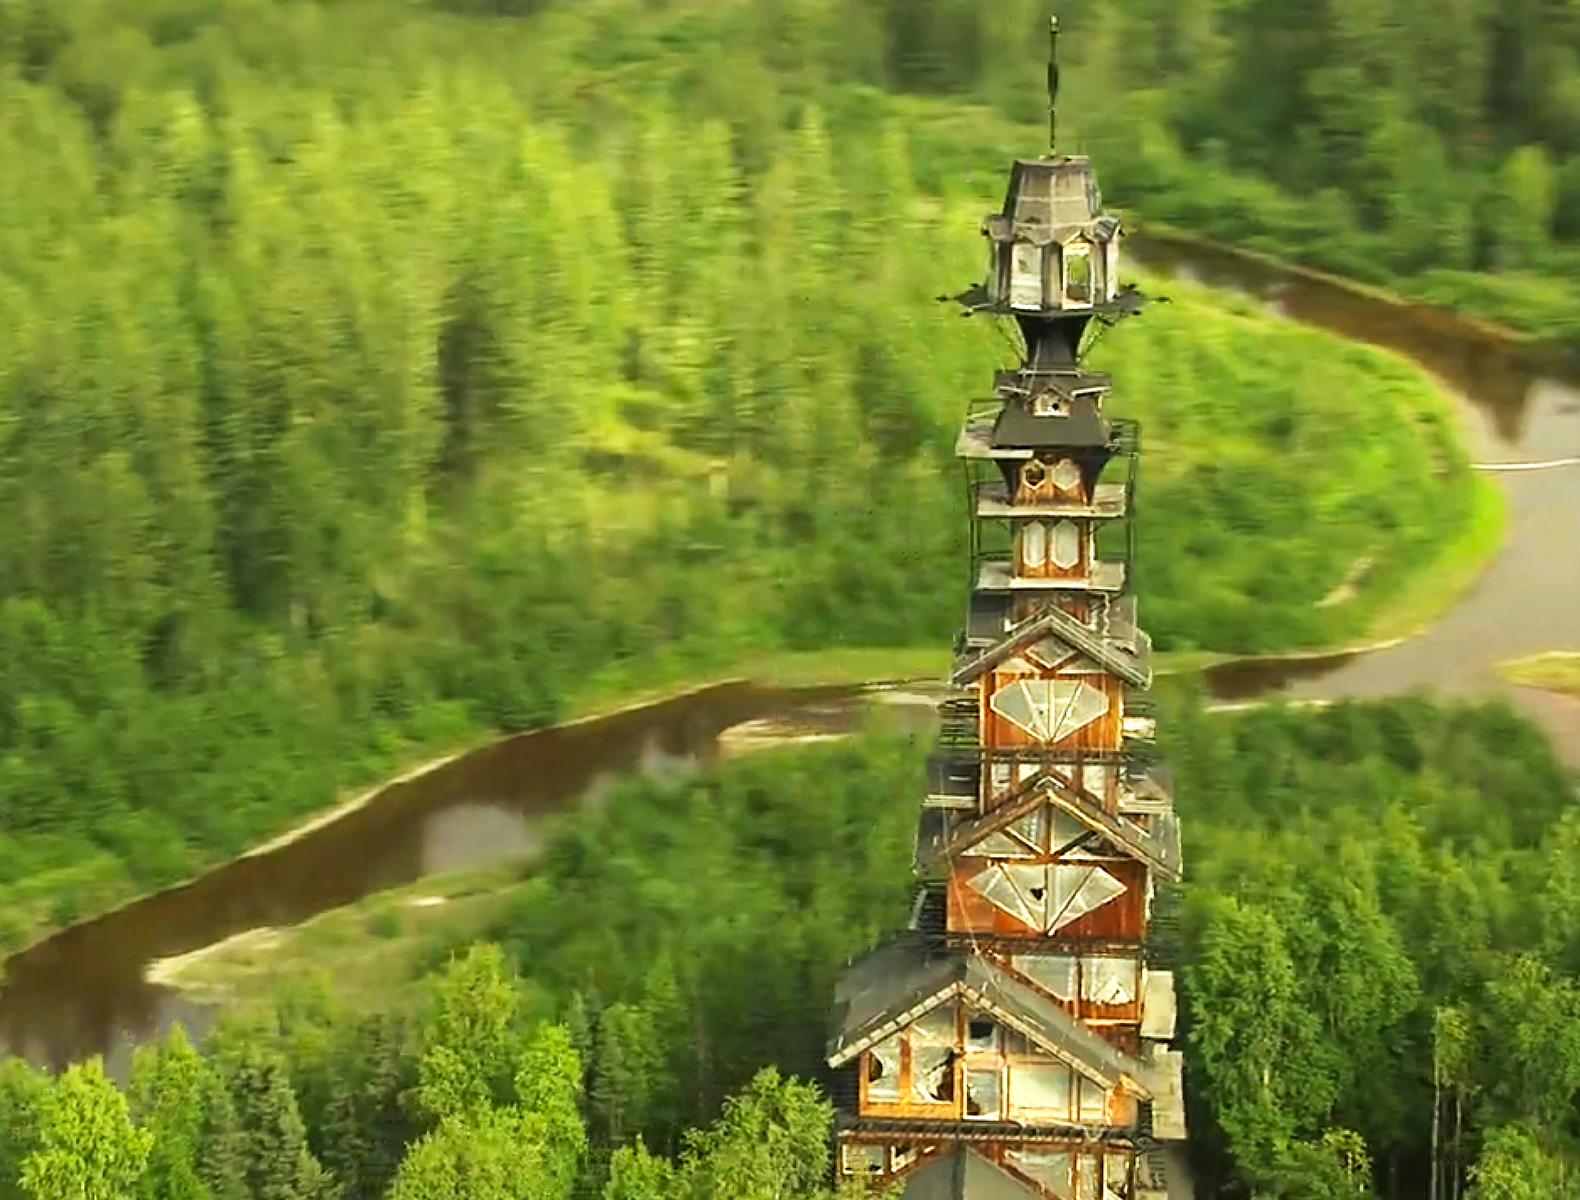 alaska s dr seuss house is a whimsical tower made of. Black Bedroom Furniture Sets. Home Design Ideas